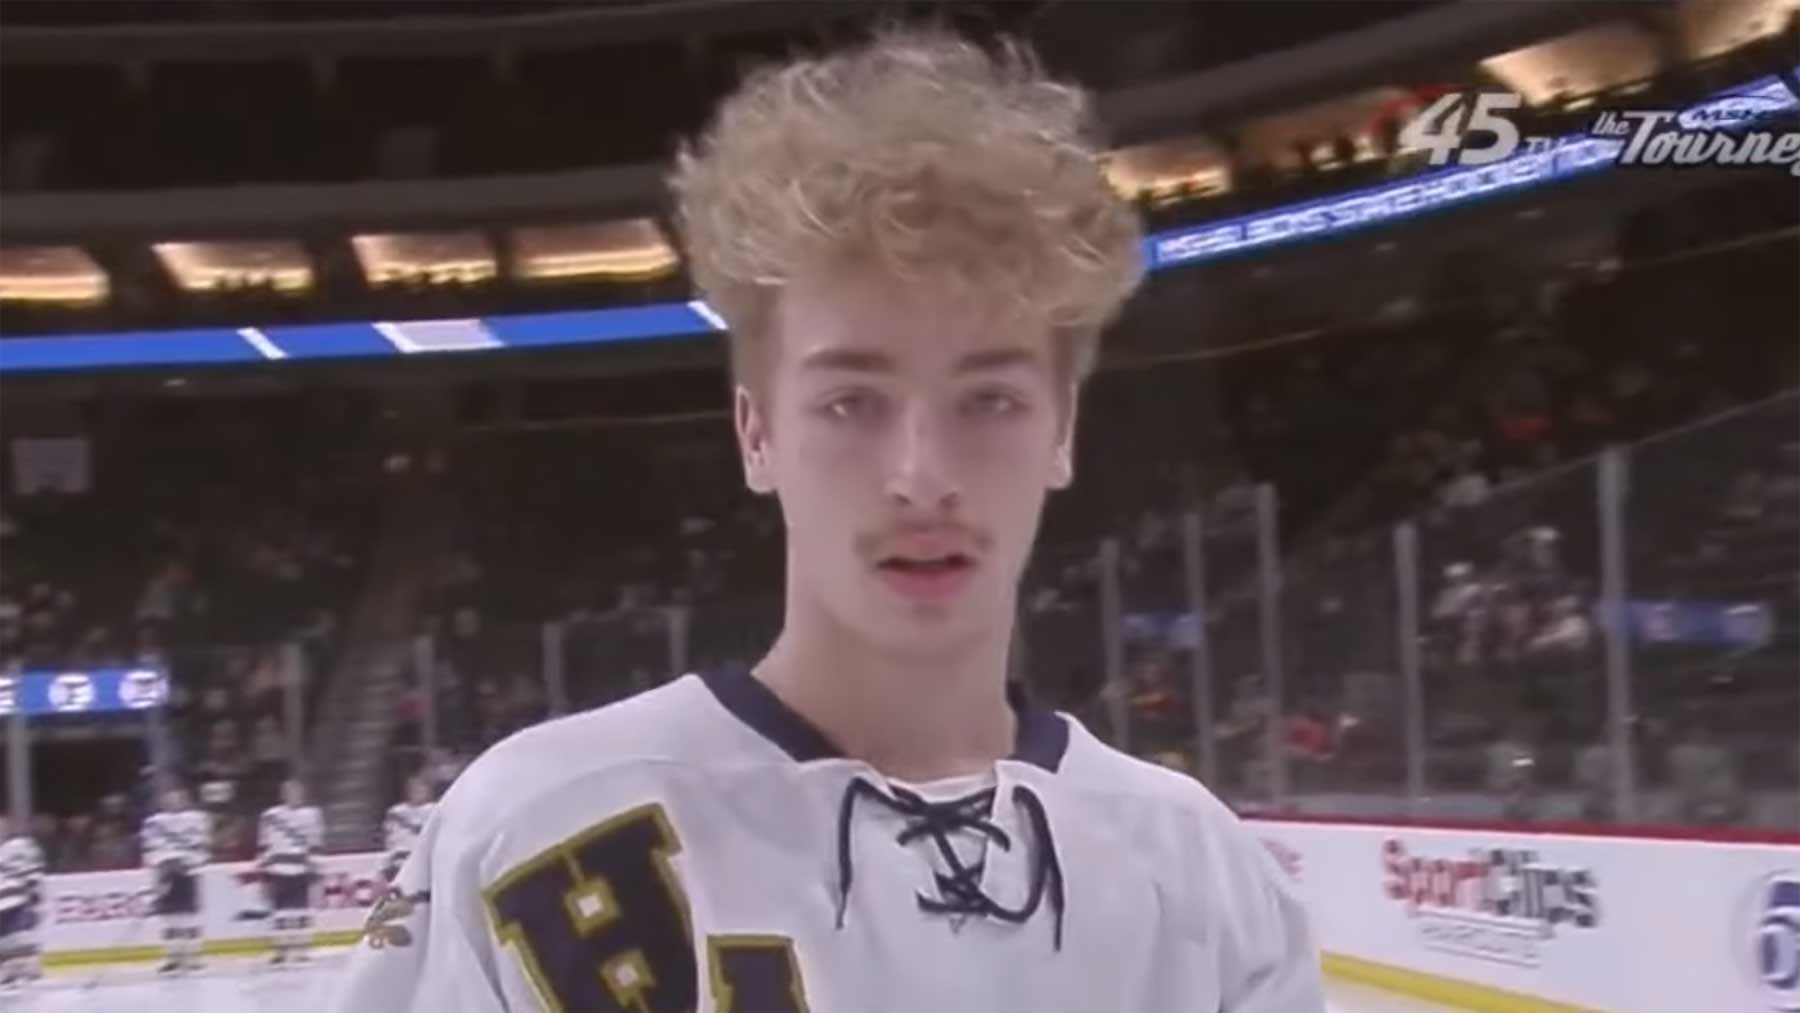 2020 High School All Hockey Hair Team